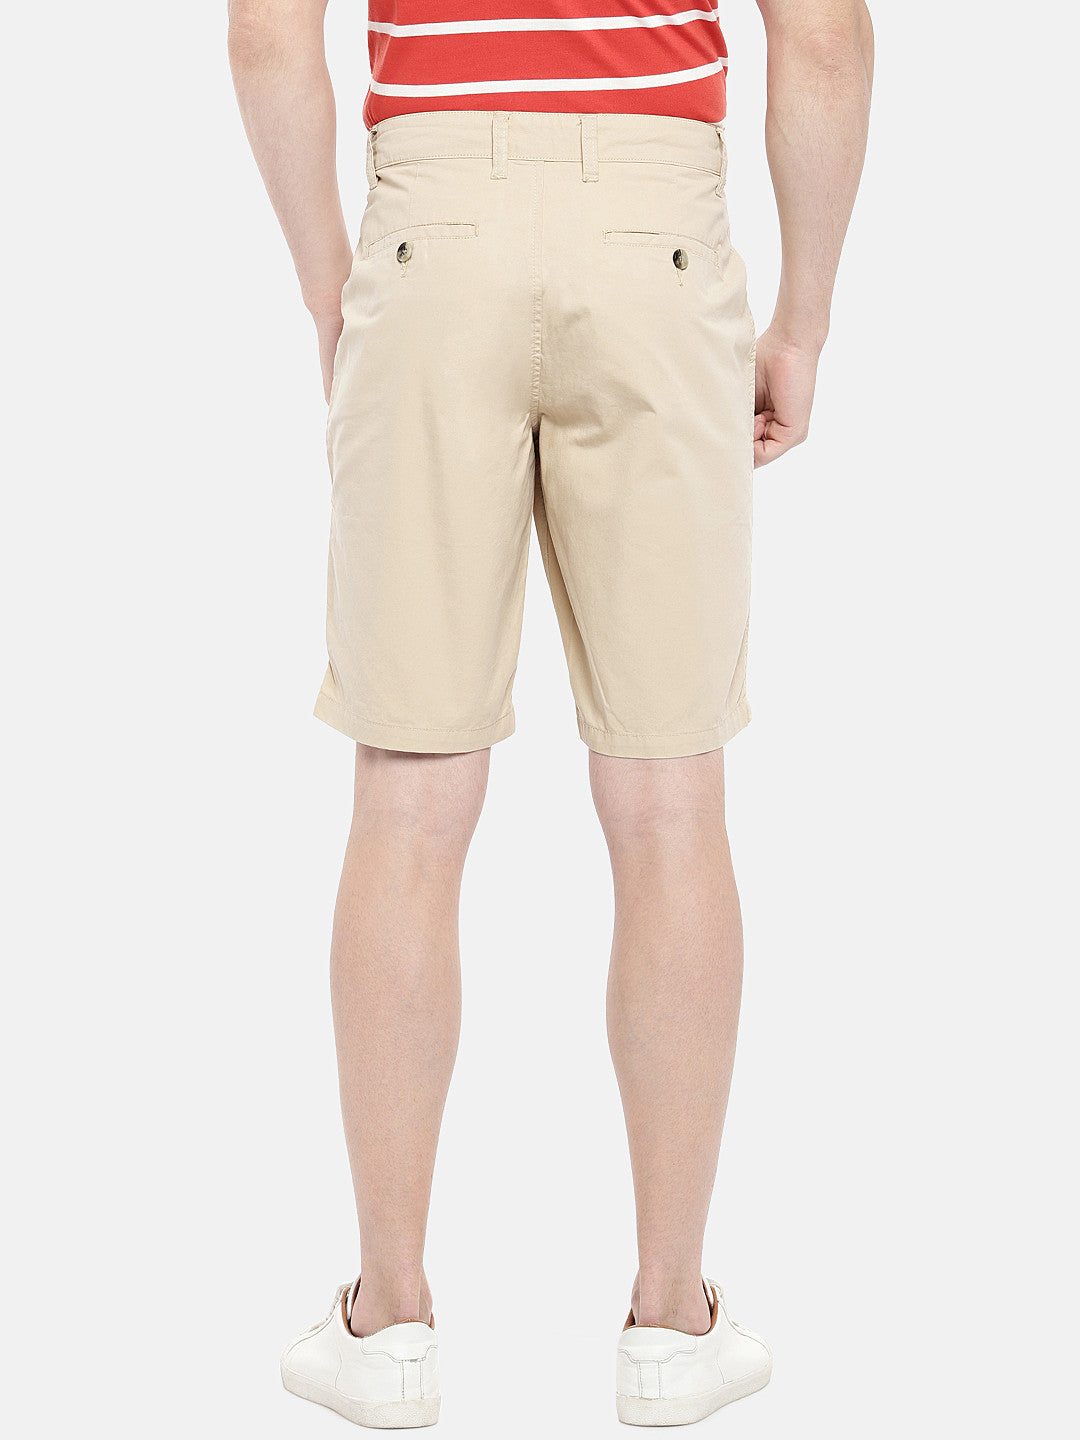 Beige Solid Regular Fit Chino Shorts-3